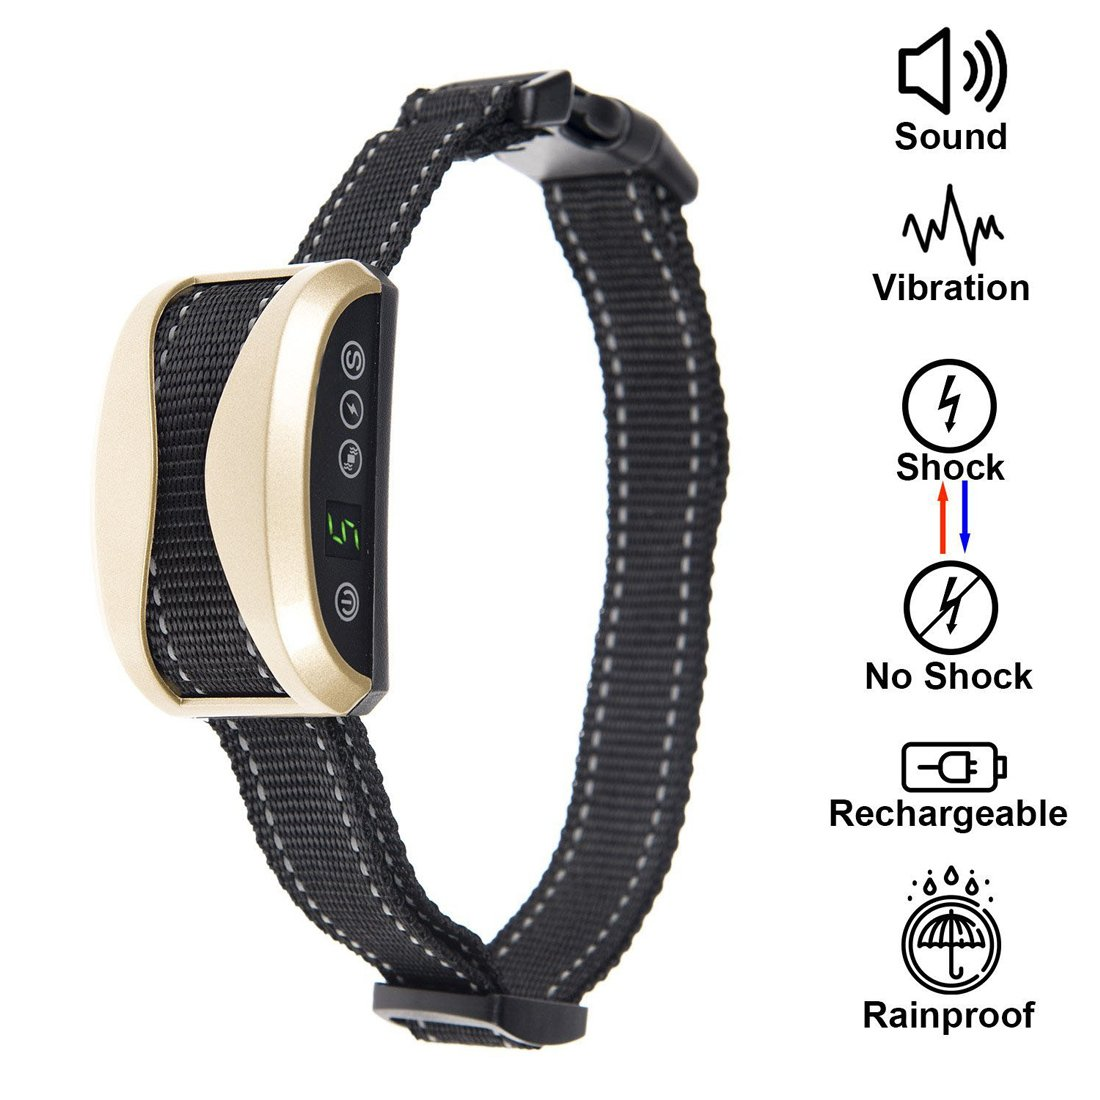 gold Bark Collar Upgrade 7 Sensitivity Rechargeable Humane Dog No Bark Collar by LKPET with Rechargeable, Rainproof, with Shock Vibration Beep Modes for Small Medium Large Dog